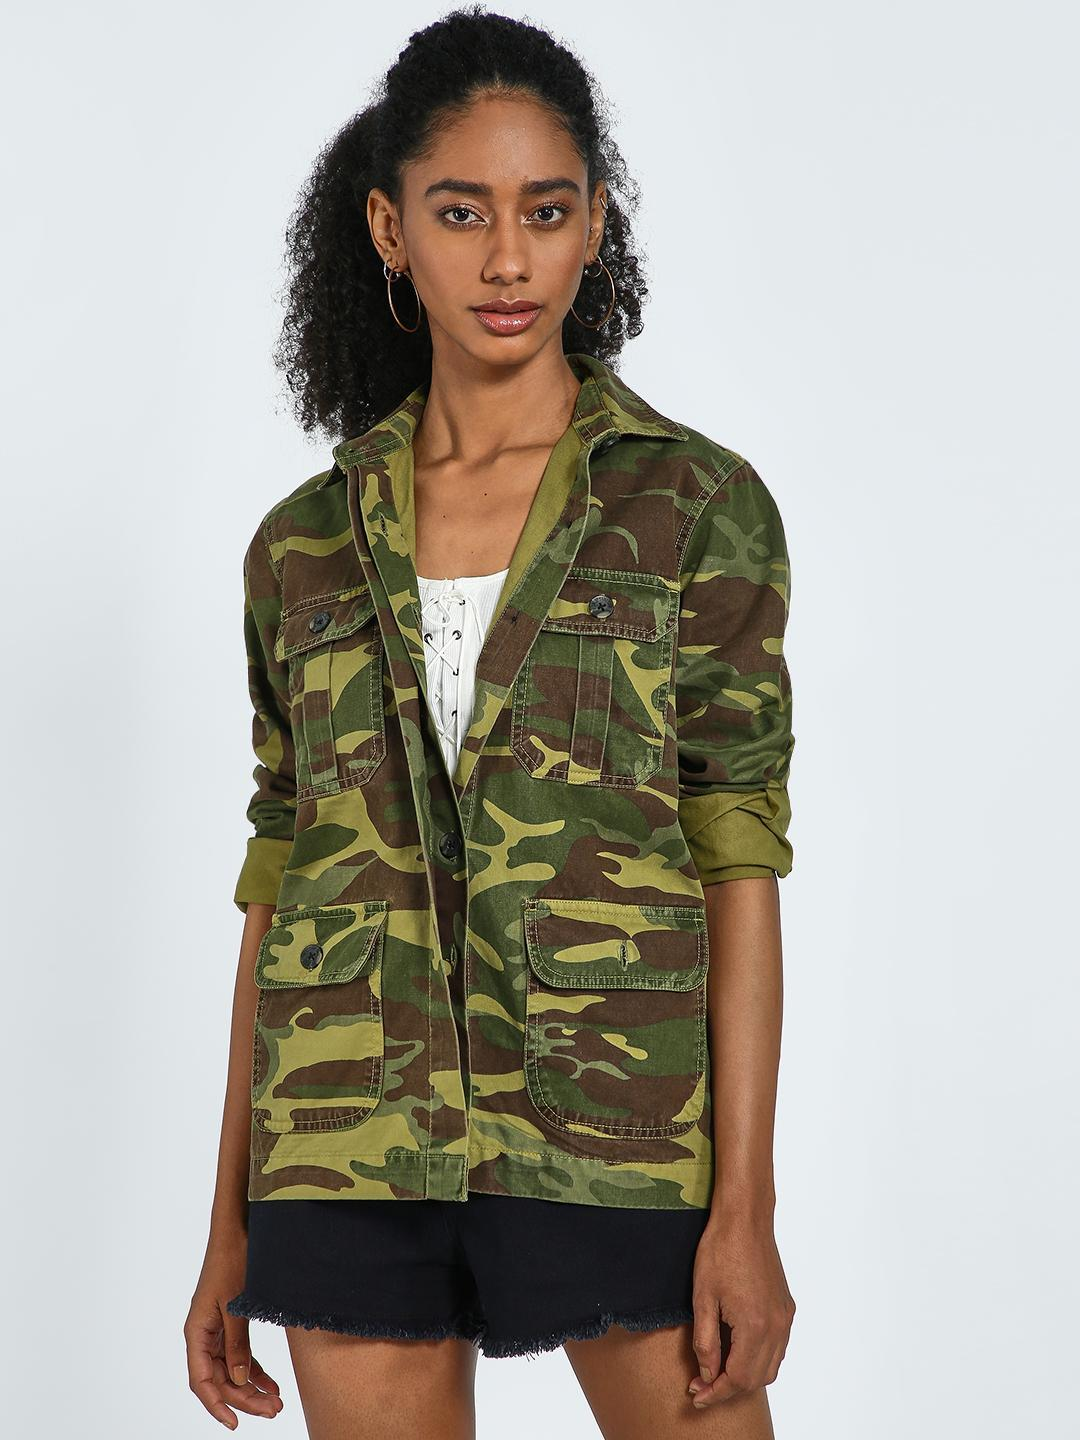 Blue Saint Multi Camo Print Utility Jacket 1